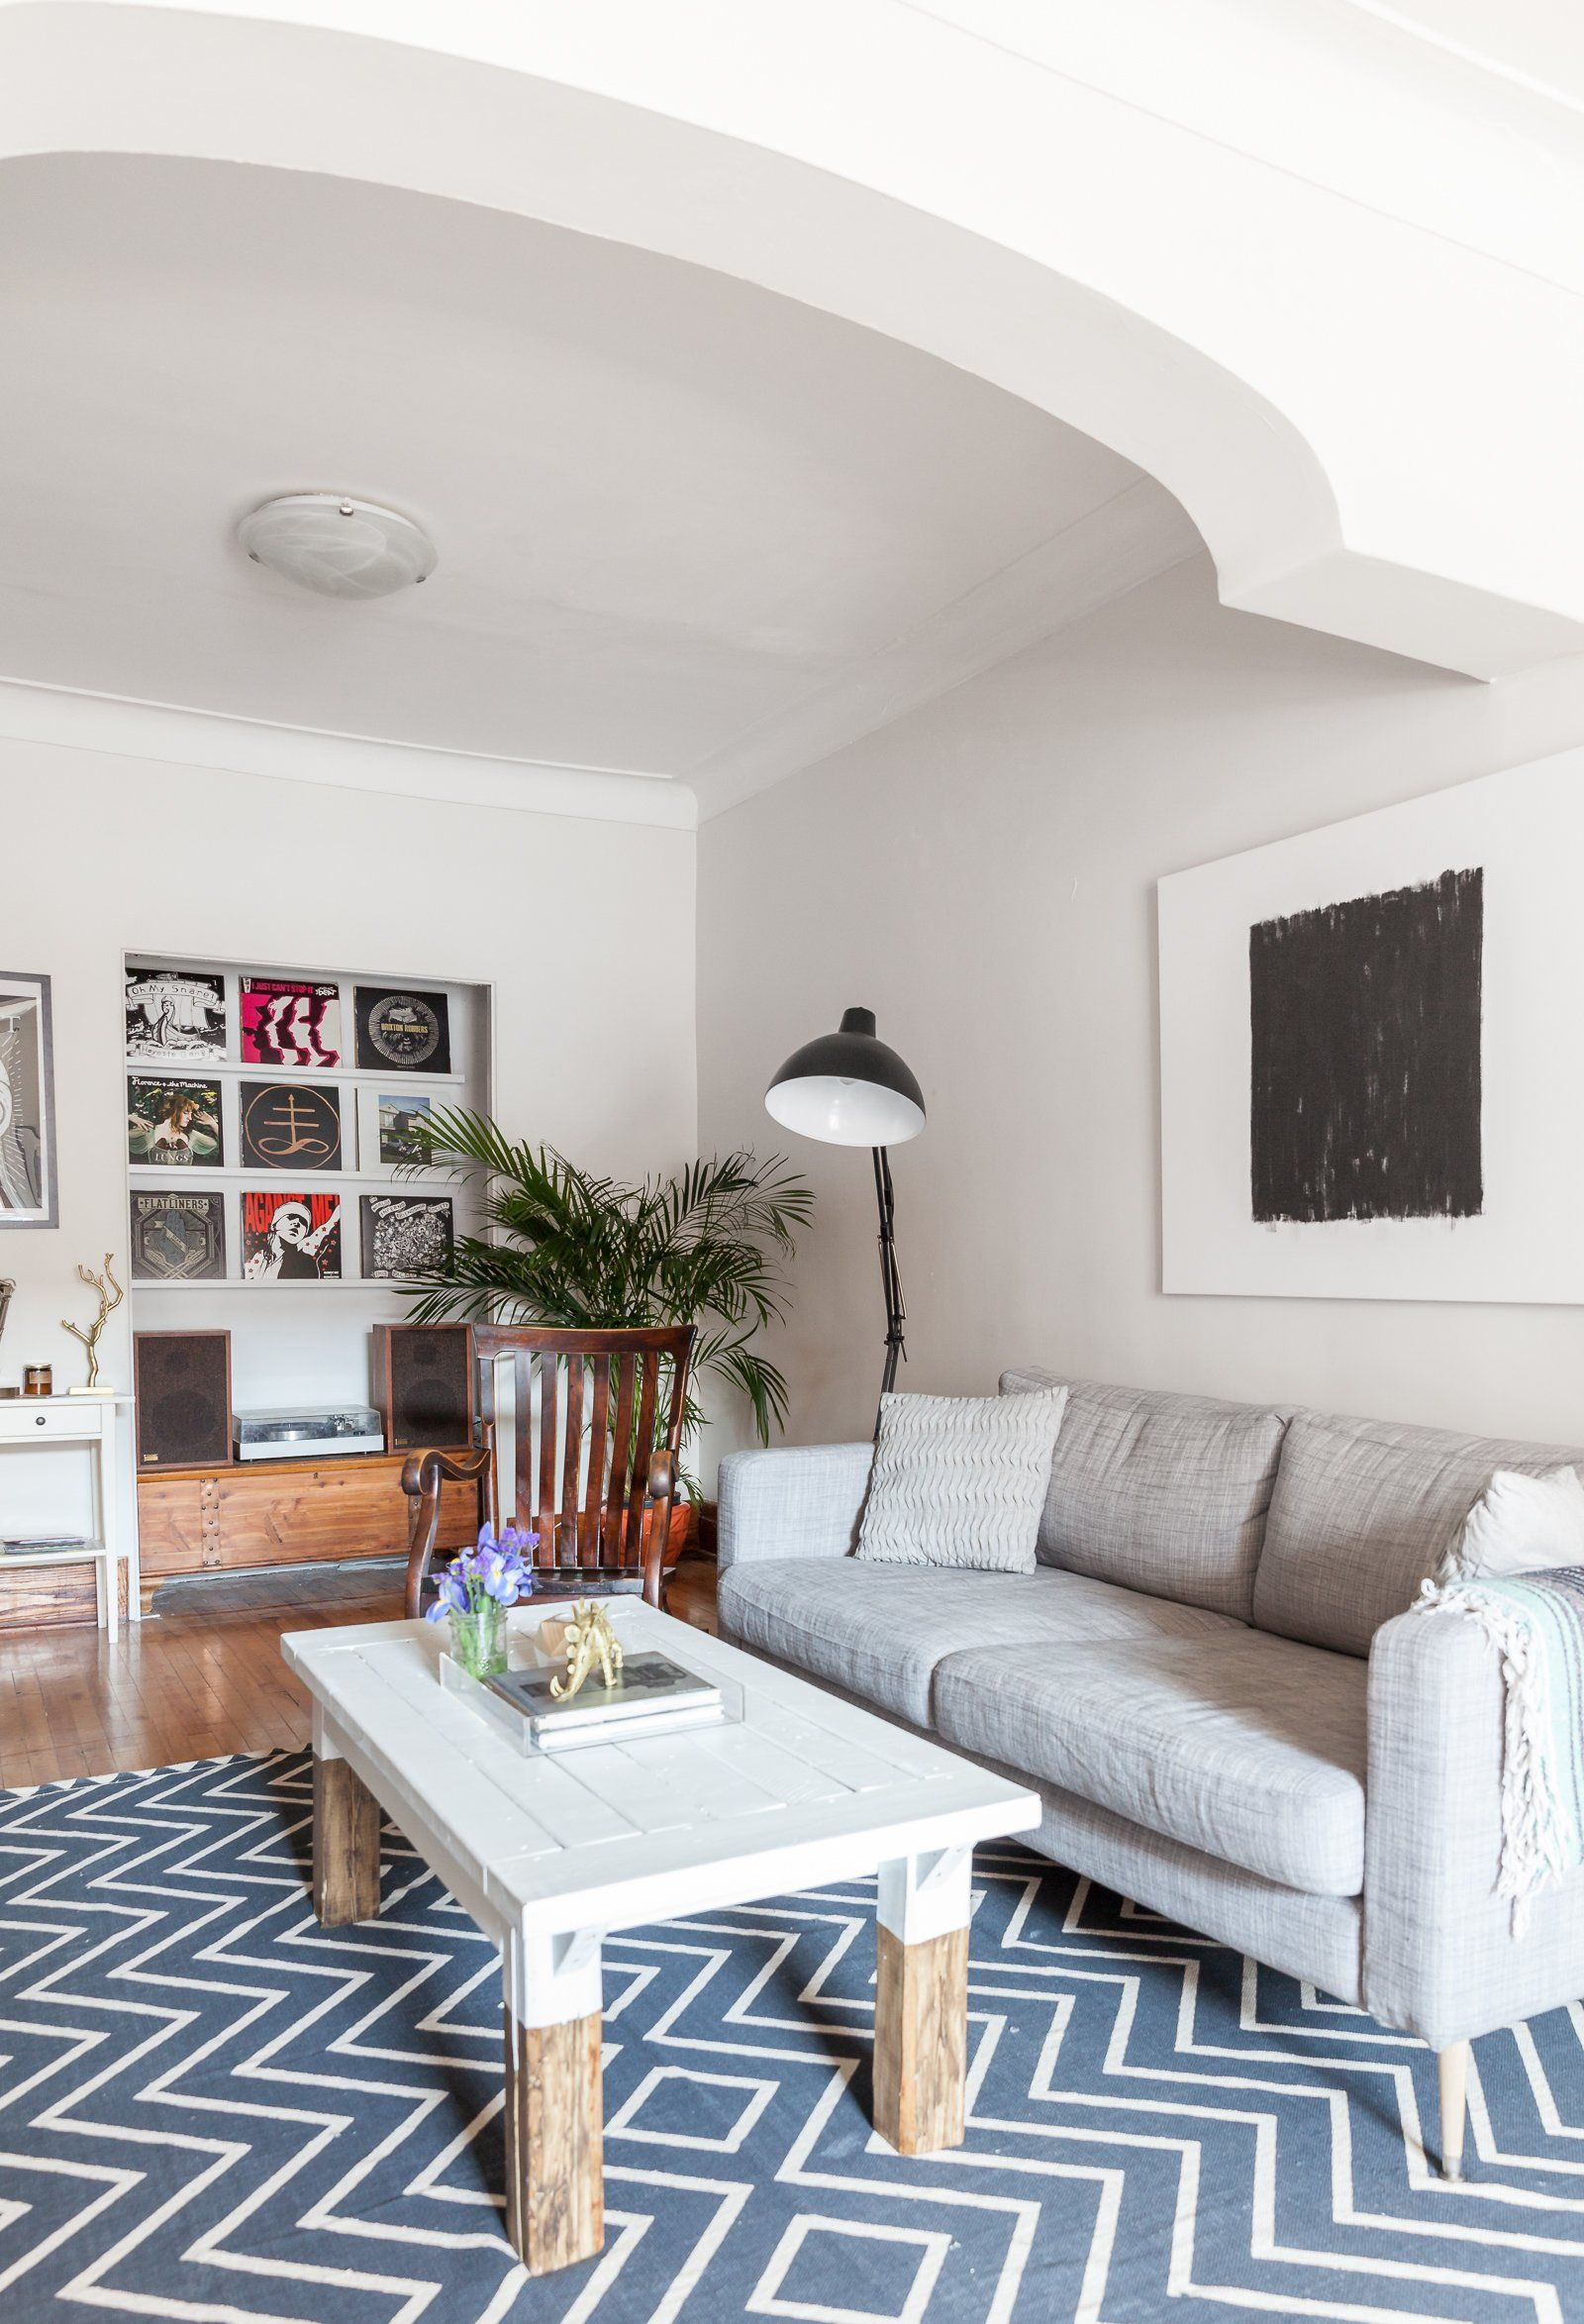 savannah mike s colorful slightly edgy montreal rental chats rh pinterest com